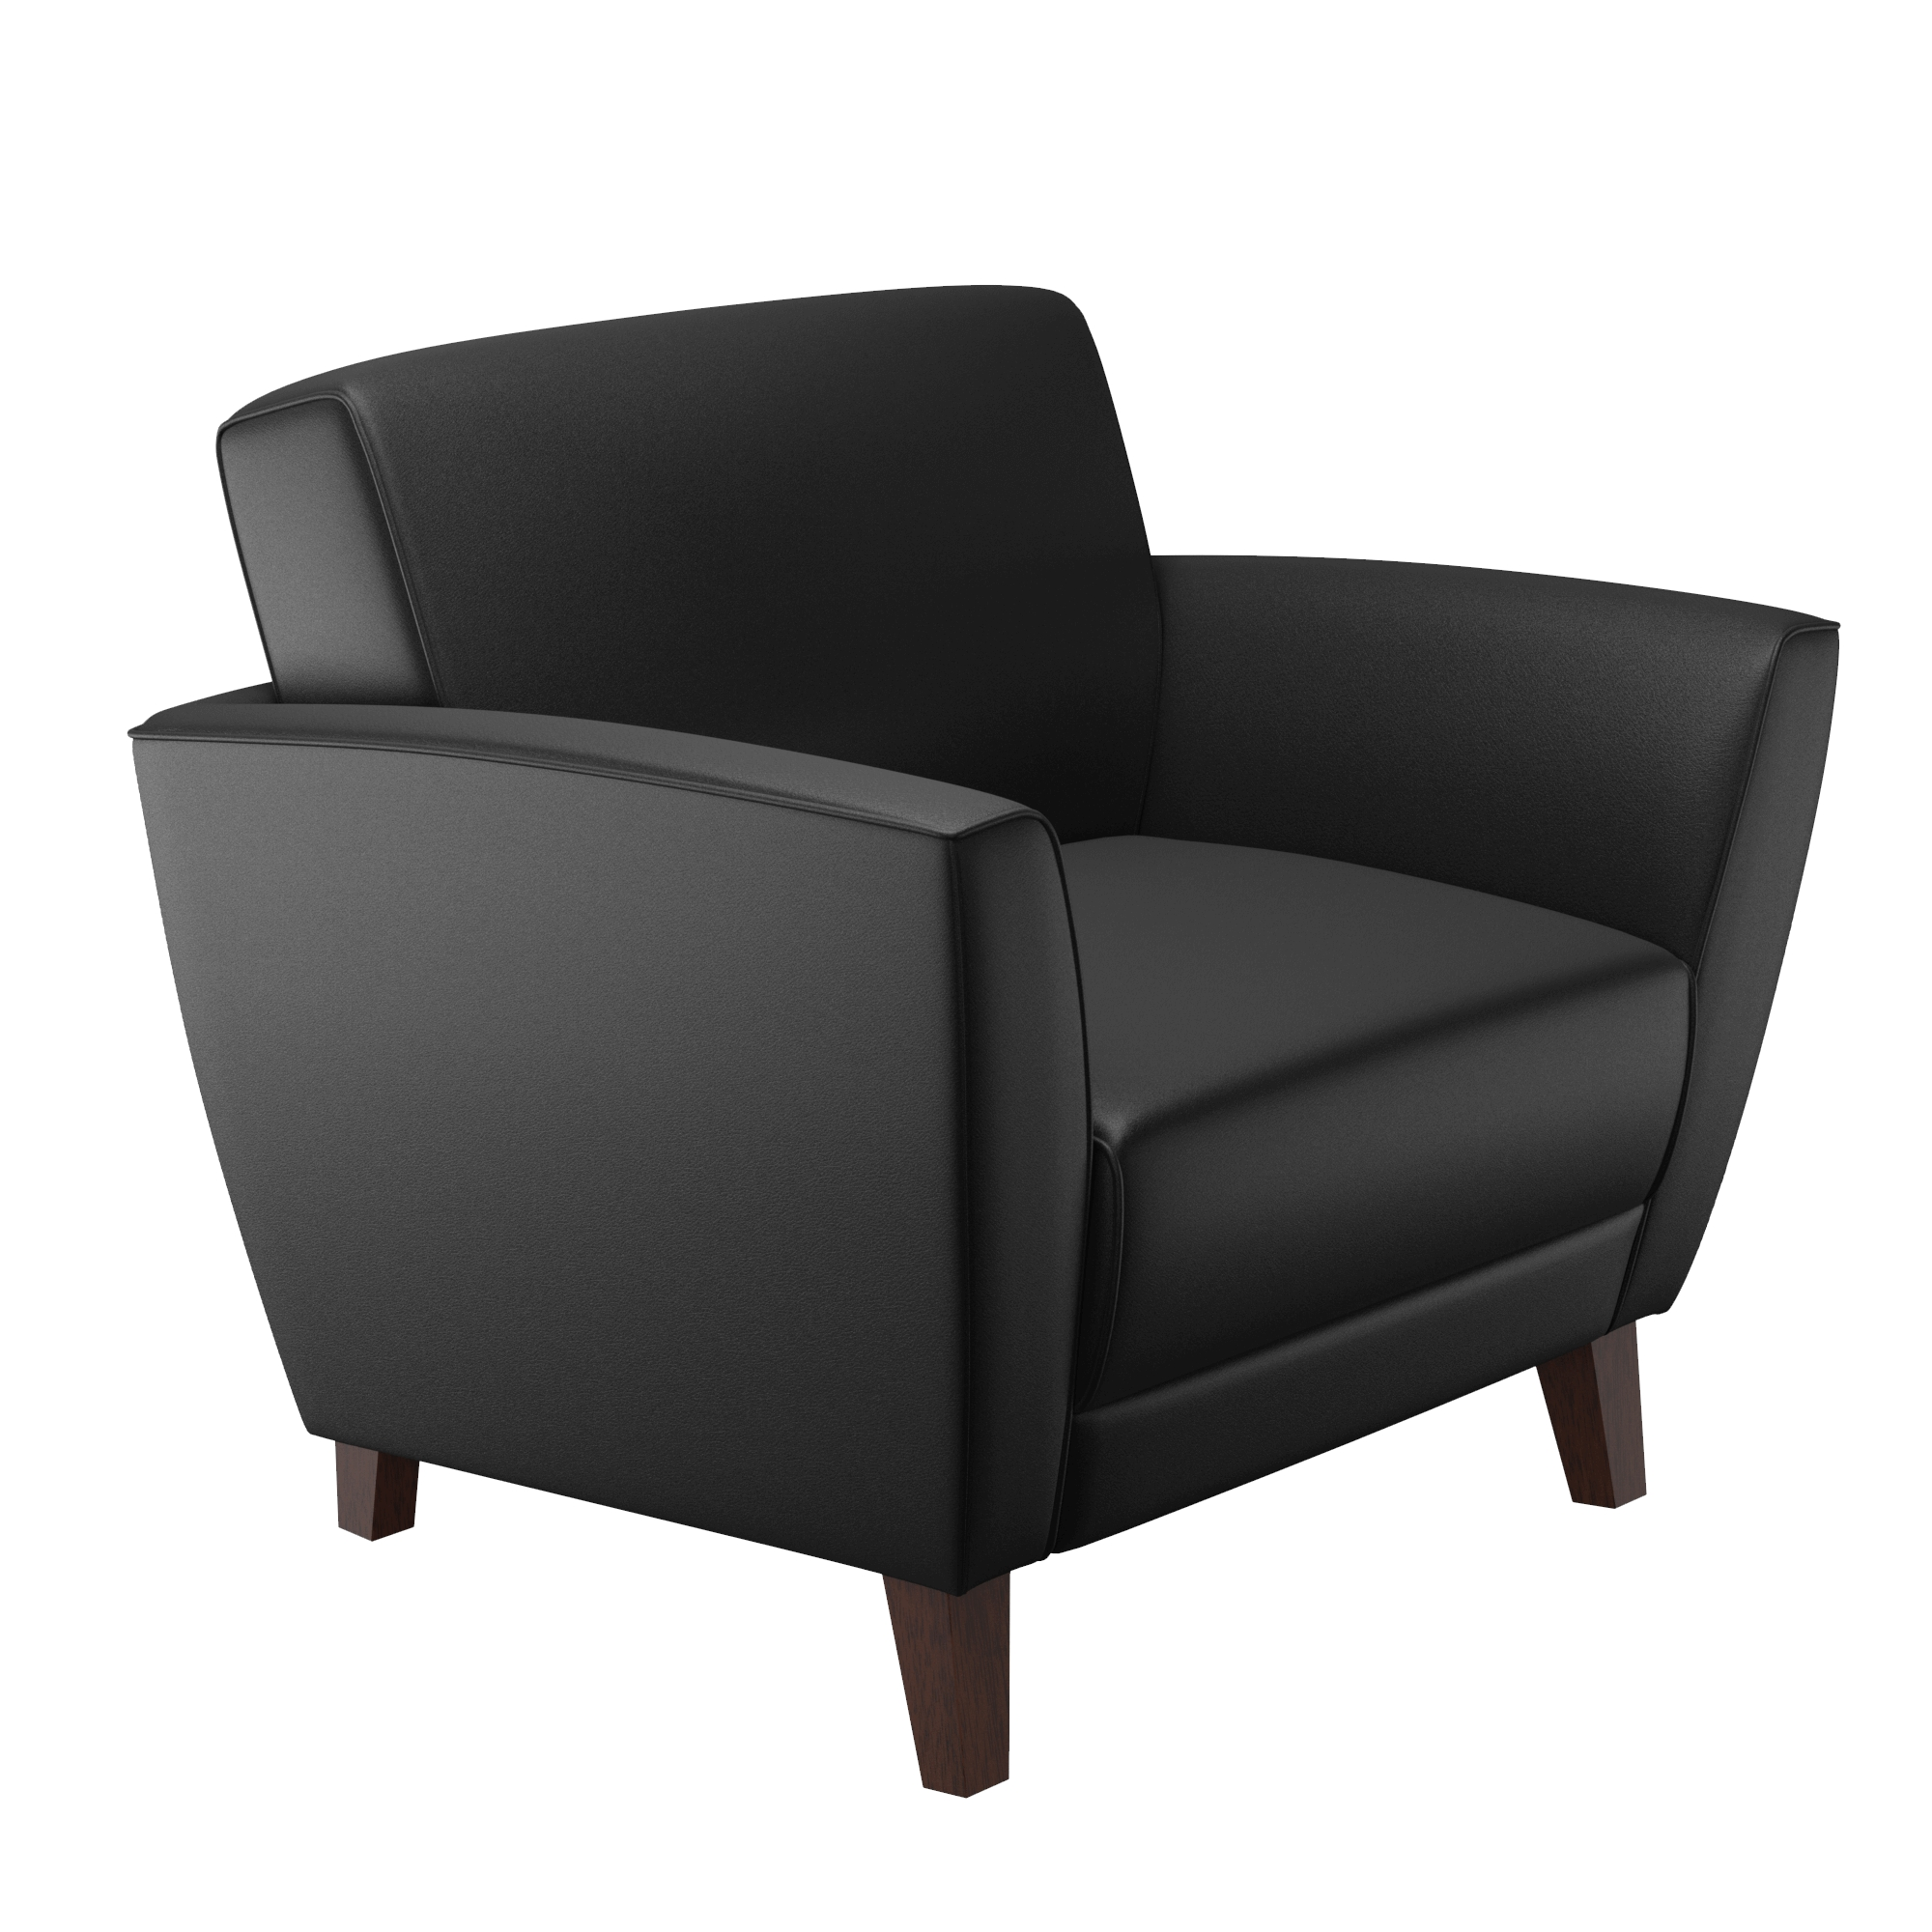 Buckley Modern Guest Chairs